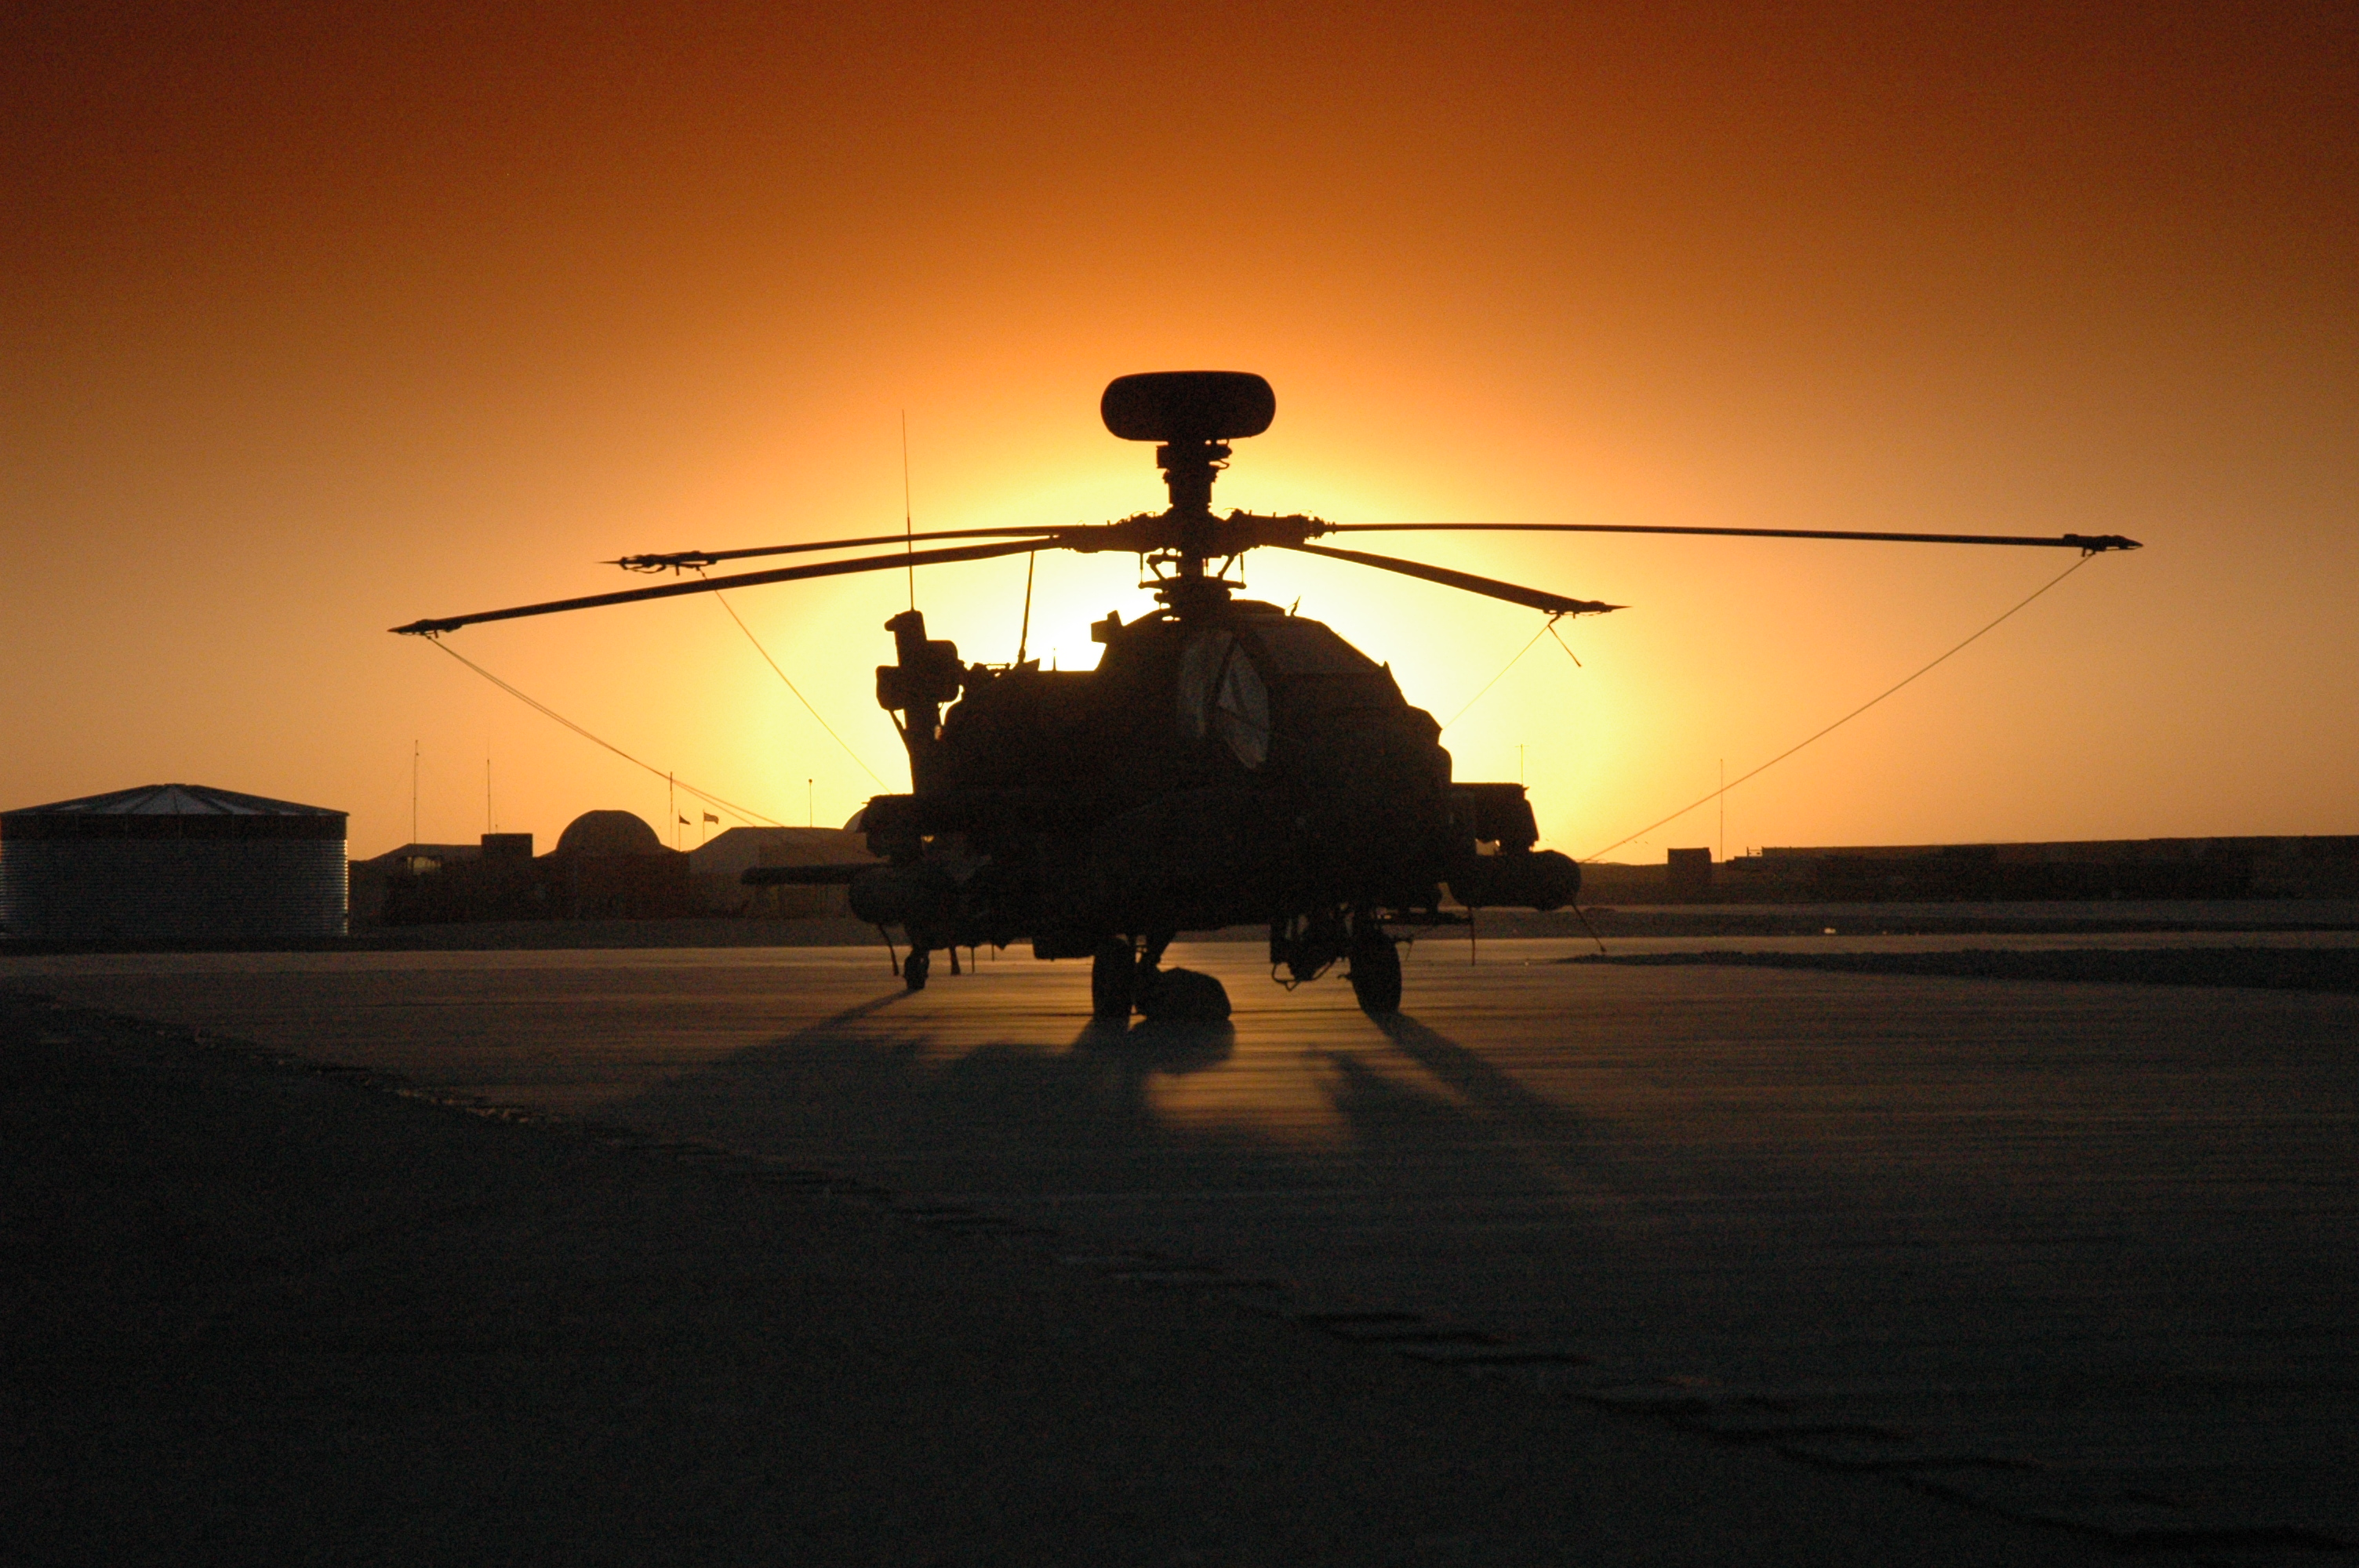 sunset aircraft helicopters vehicles ah 64 apache HD Wallpaper of 3008x2000